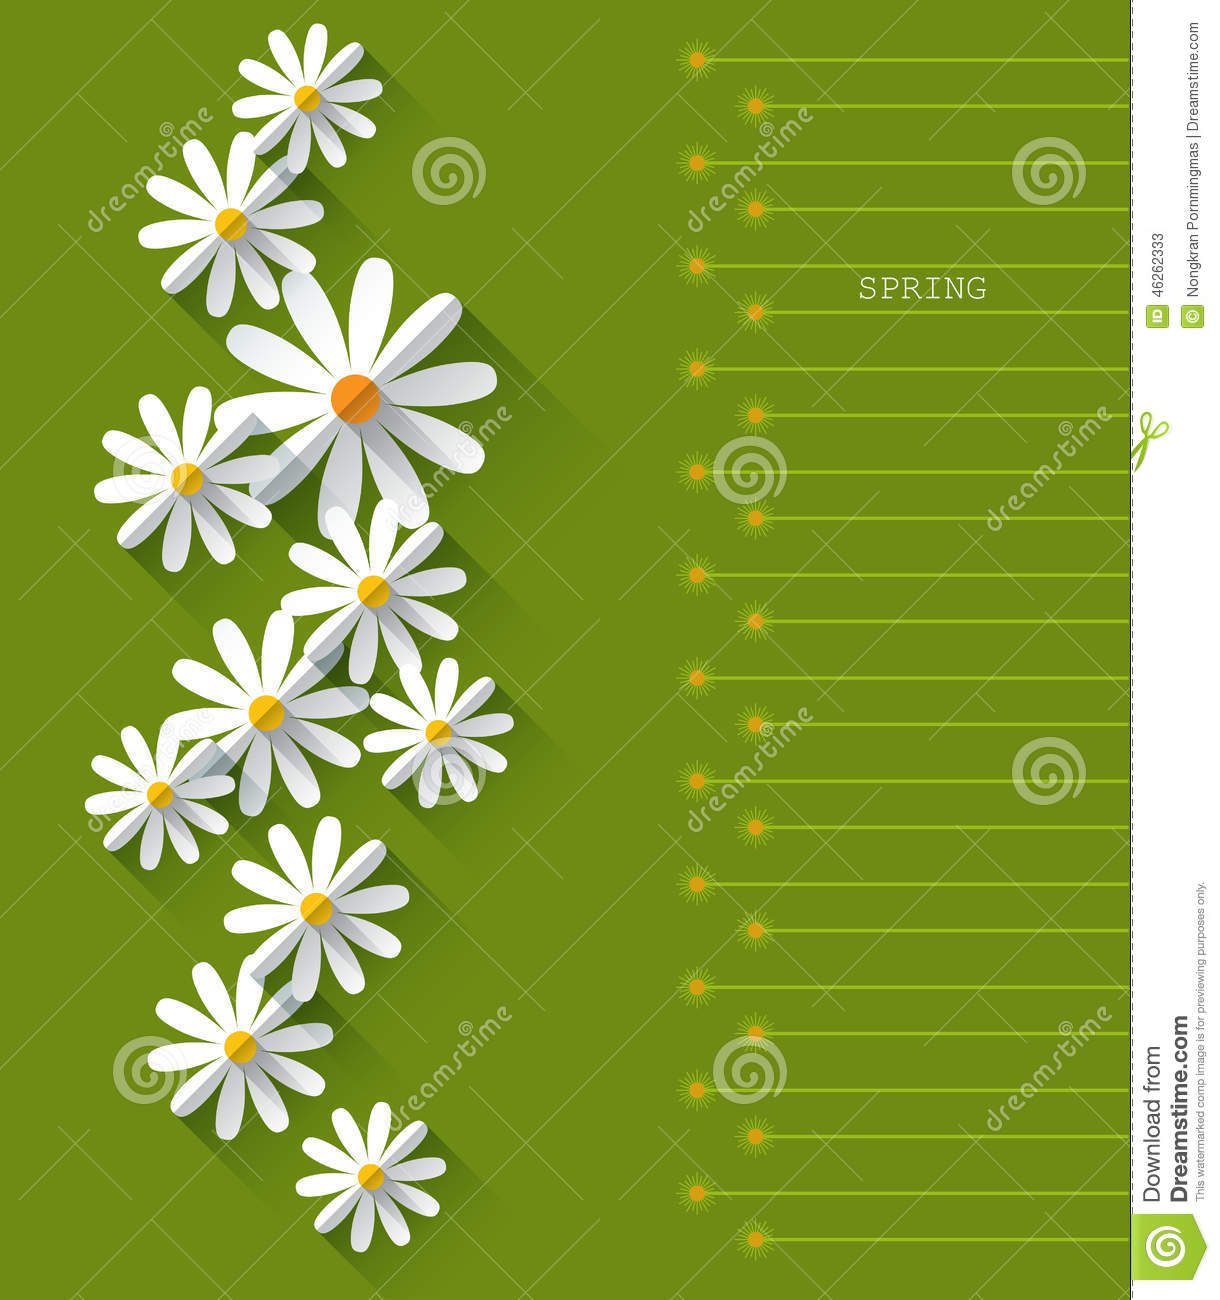 Abstract Spring Background With Paper Flowers Stock VectorImage